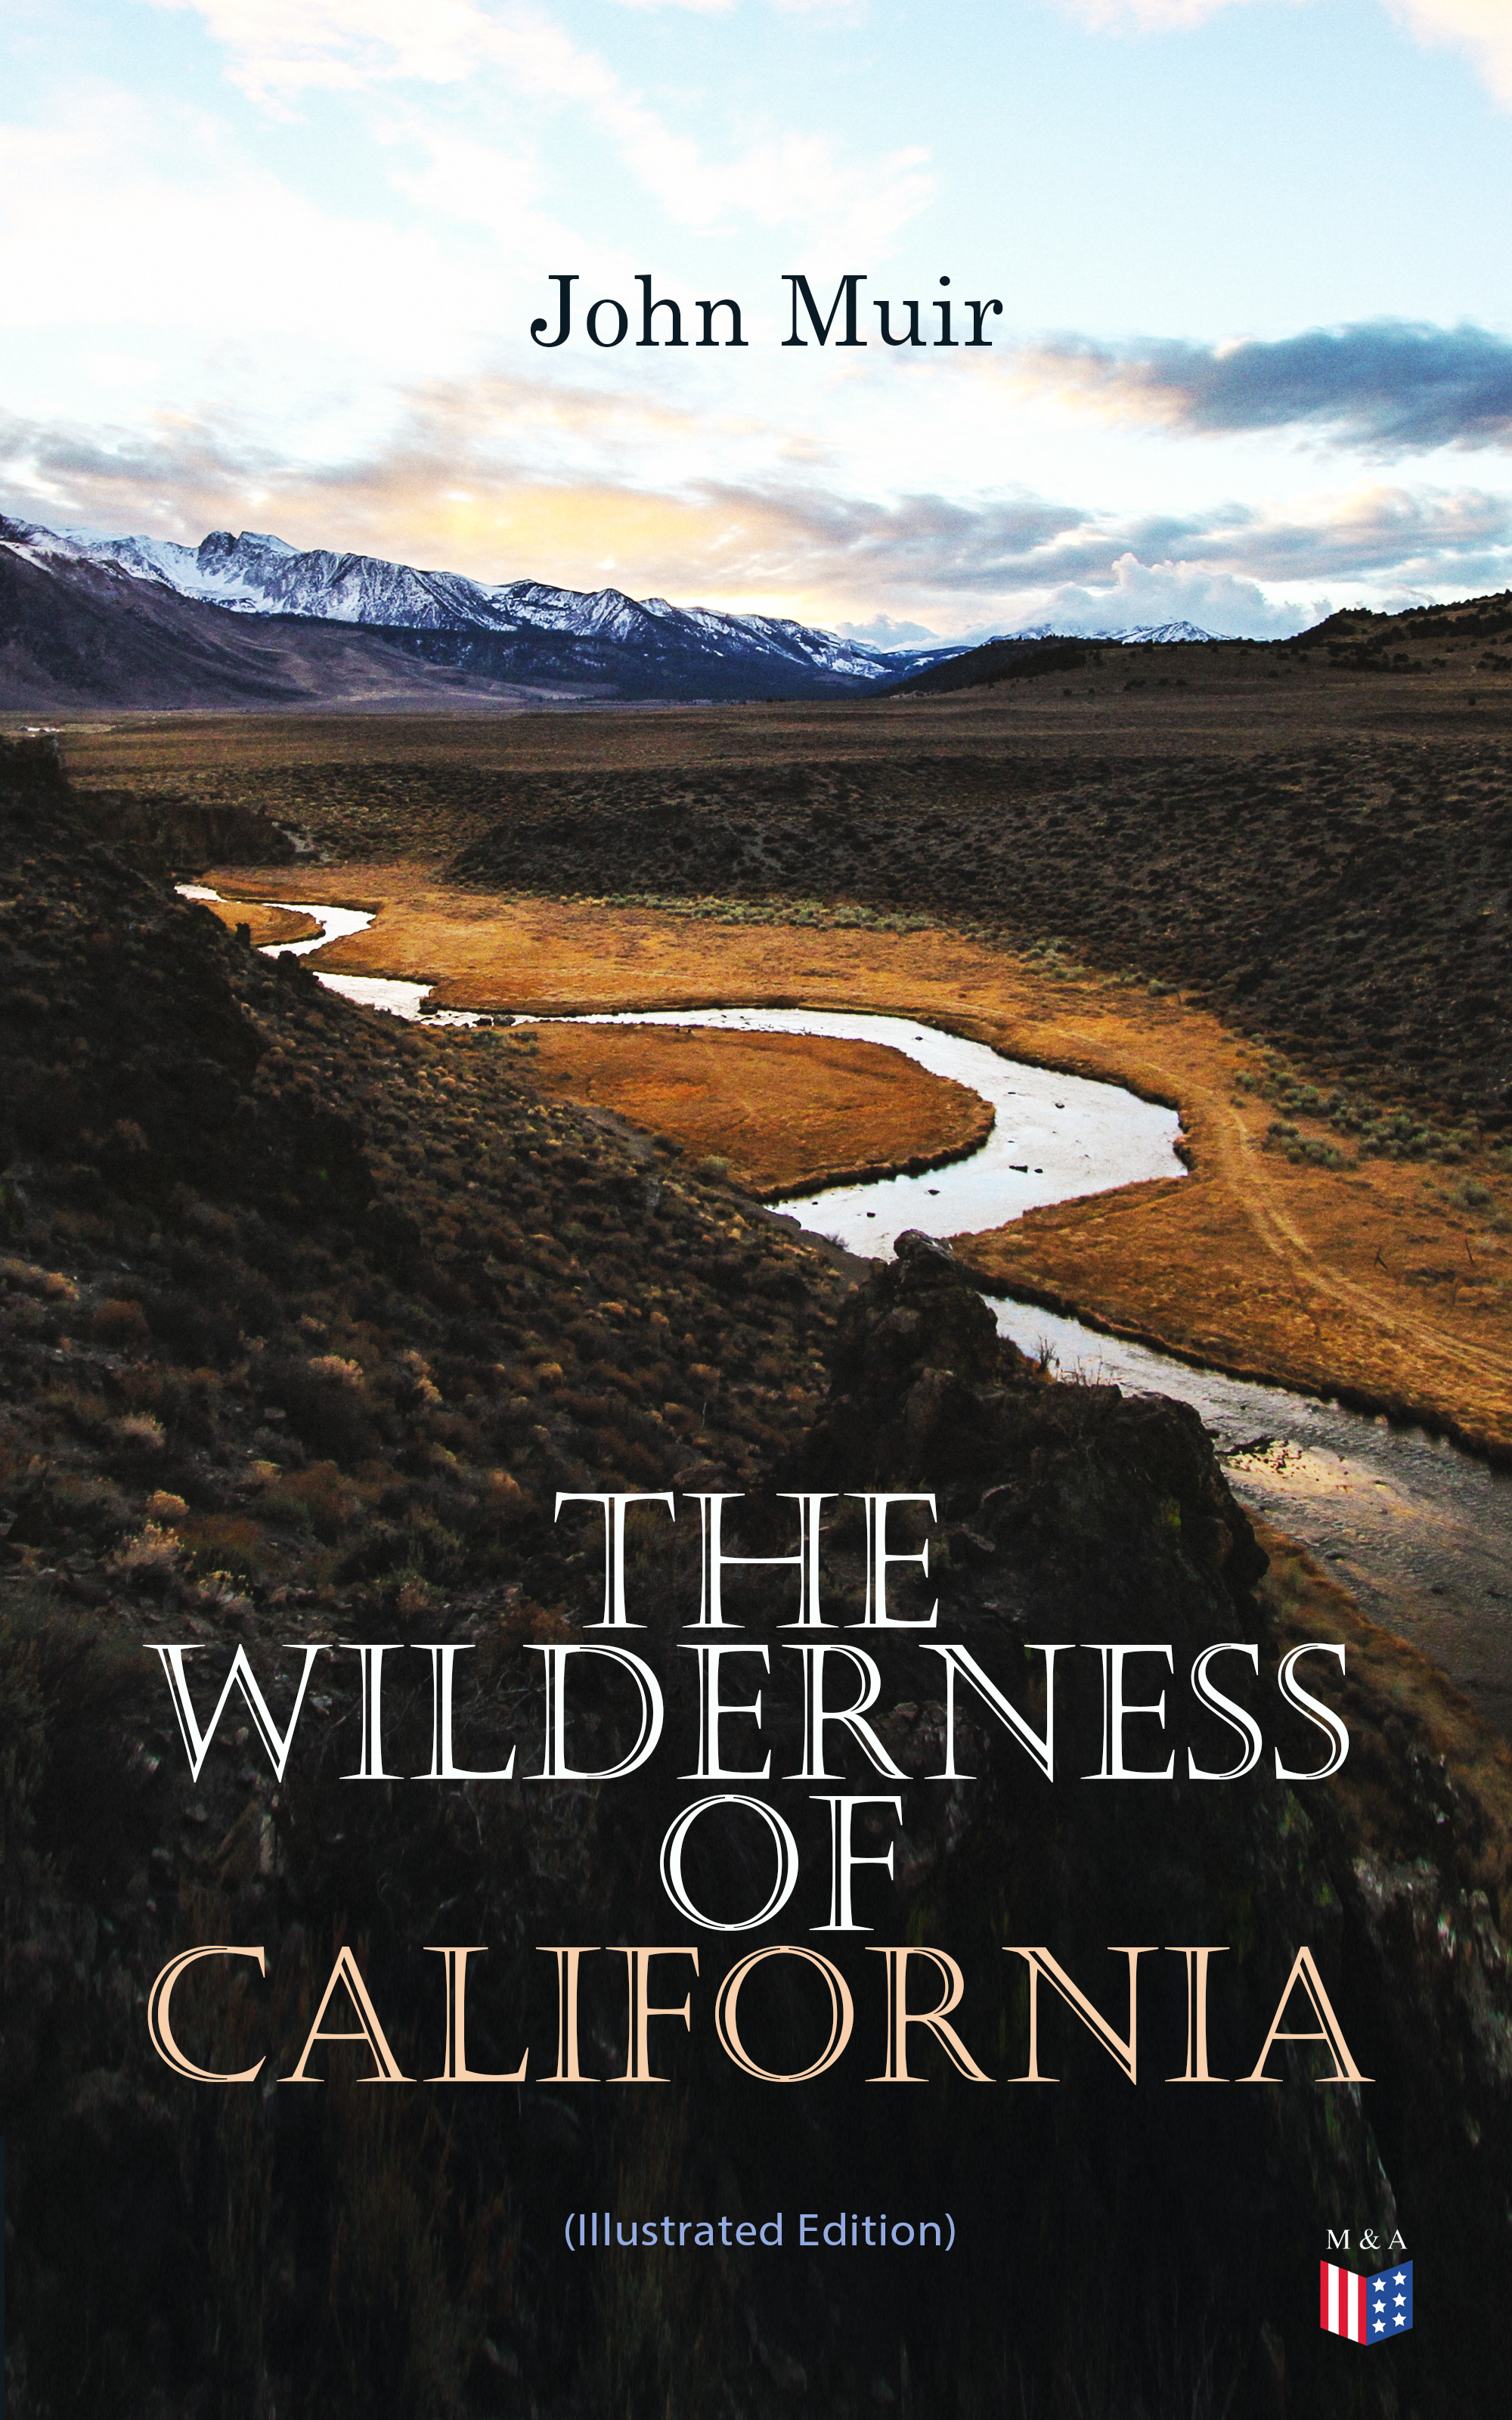 John Muir The Wilderness of California (Illustrated Edition) john row the historie of the kirk of scotland icelandic edition